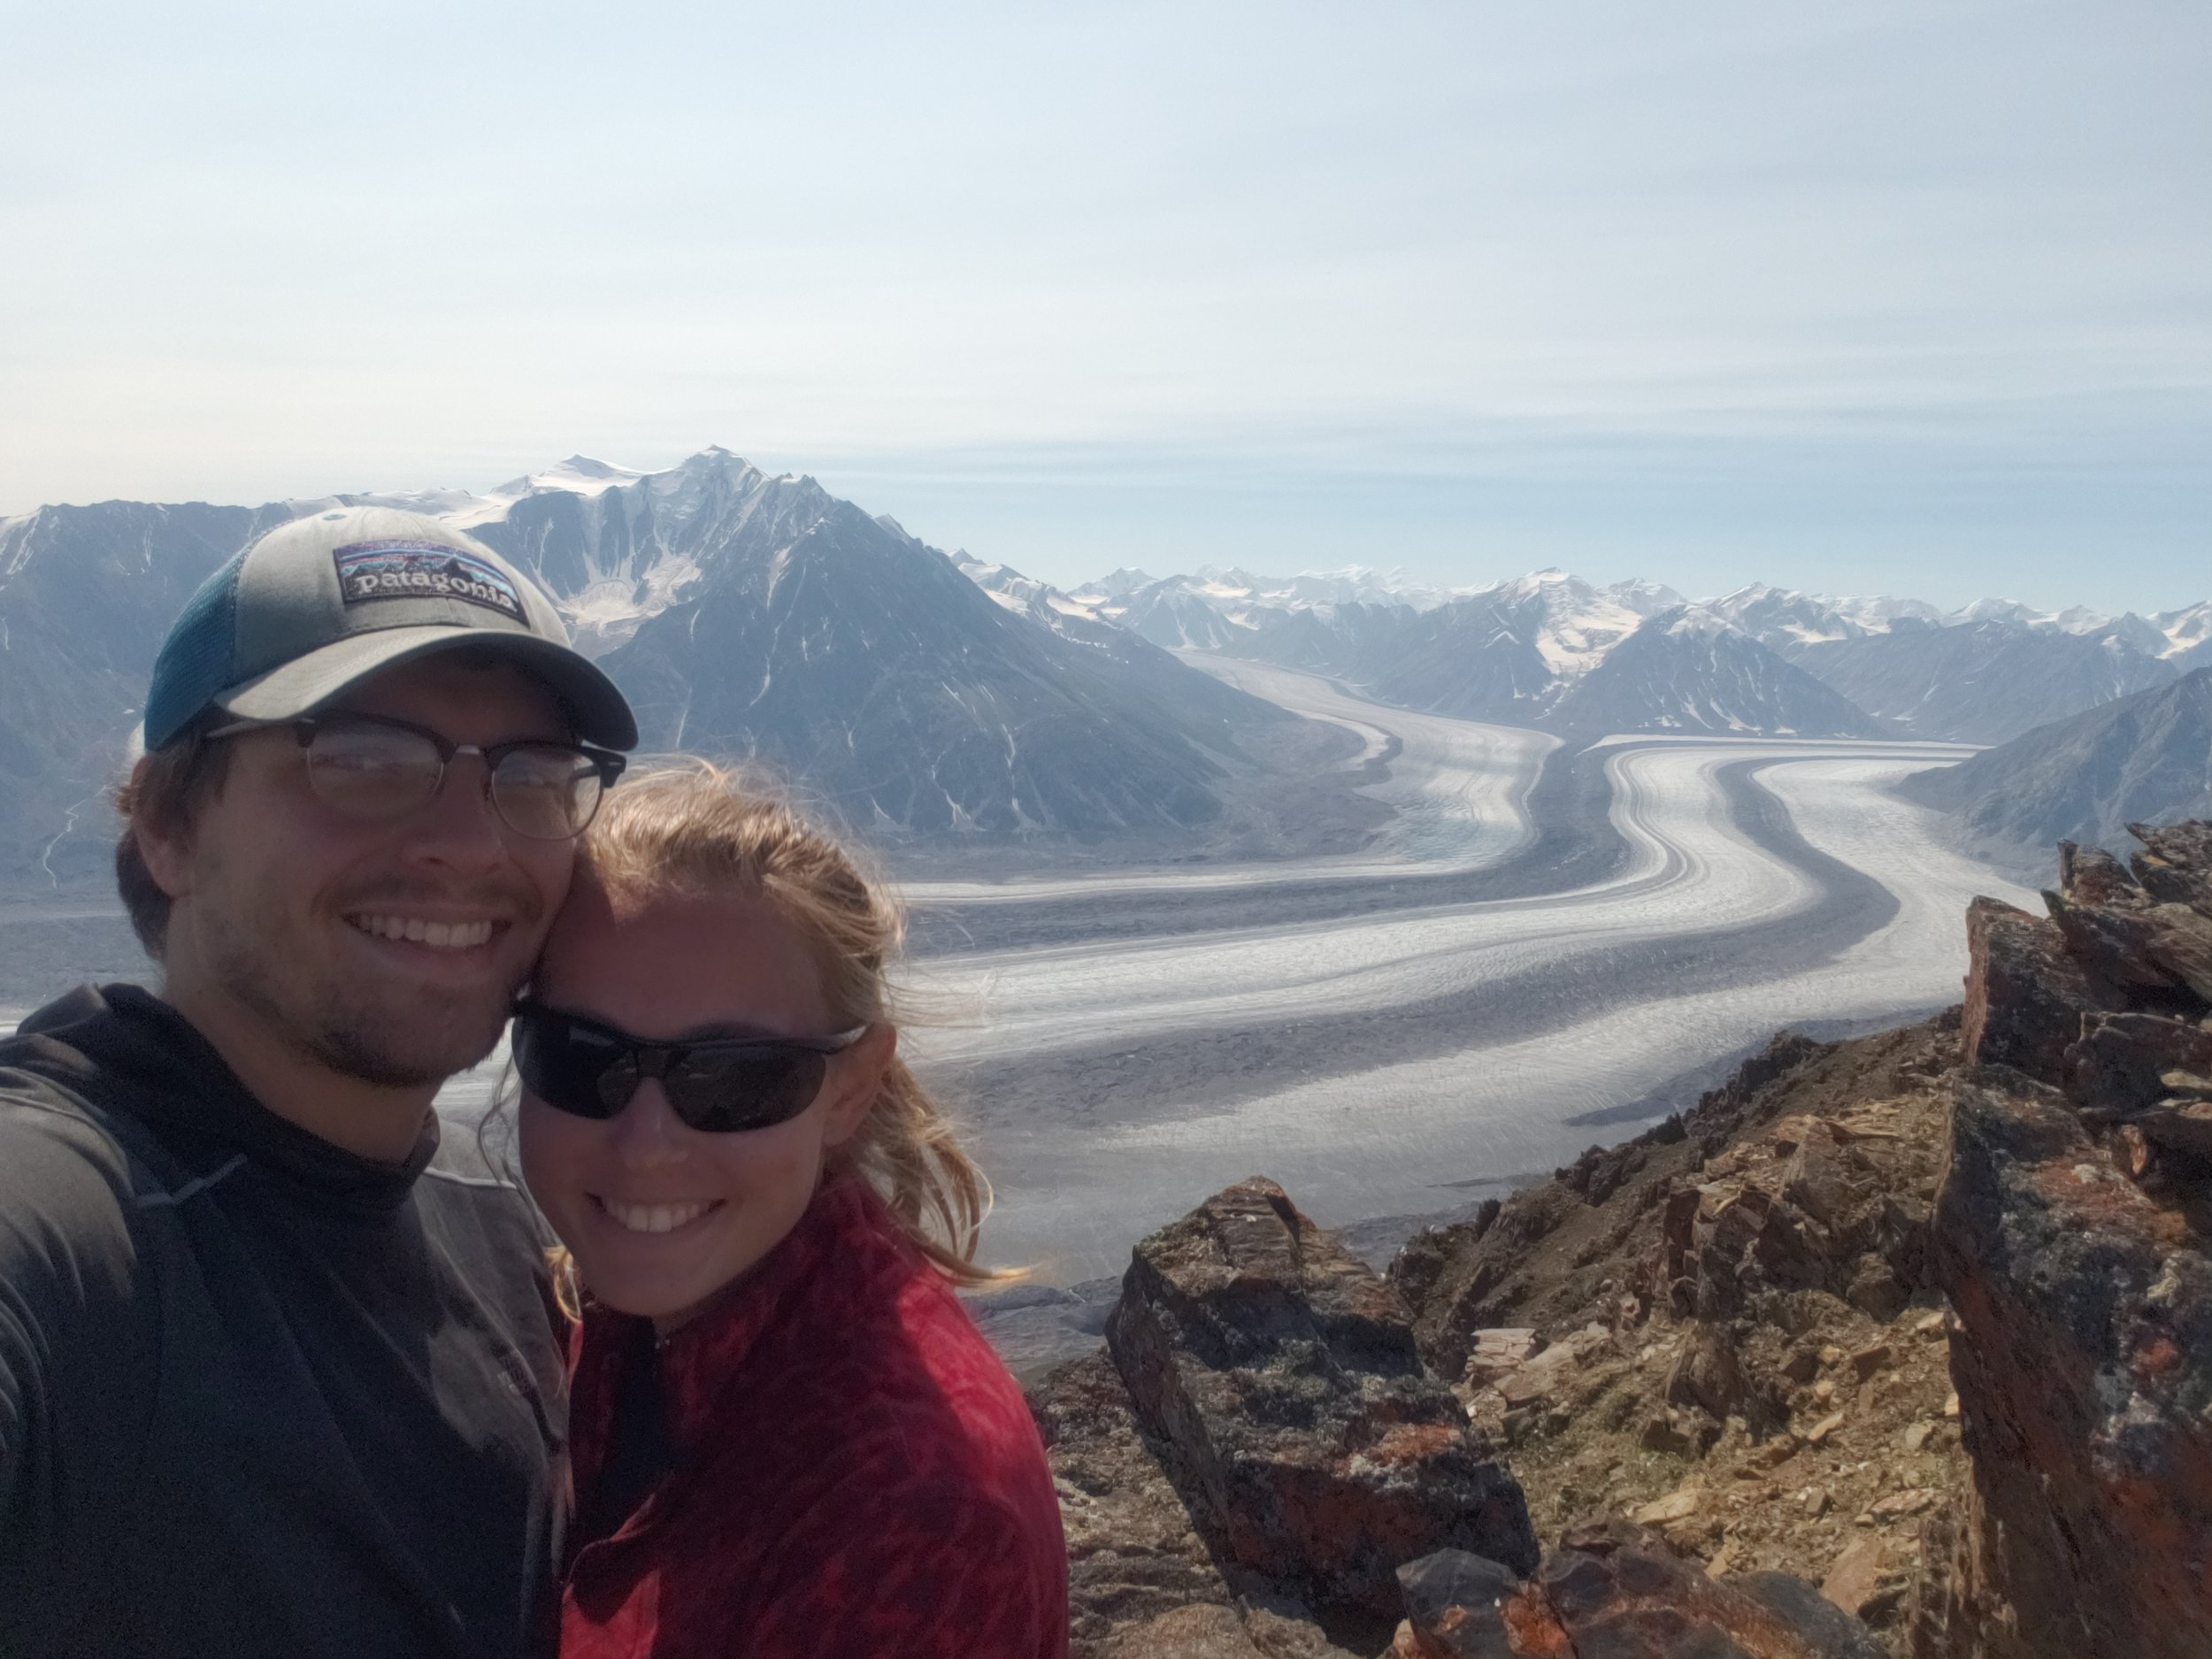 The glacier is the main course of this backpacking route, and the valley hike is just an appetizer.